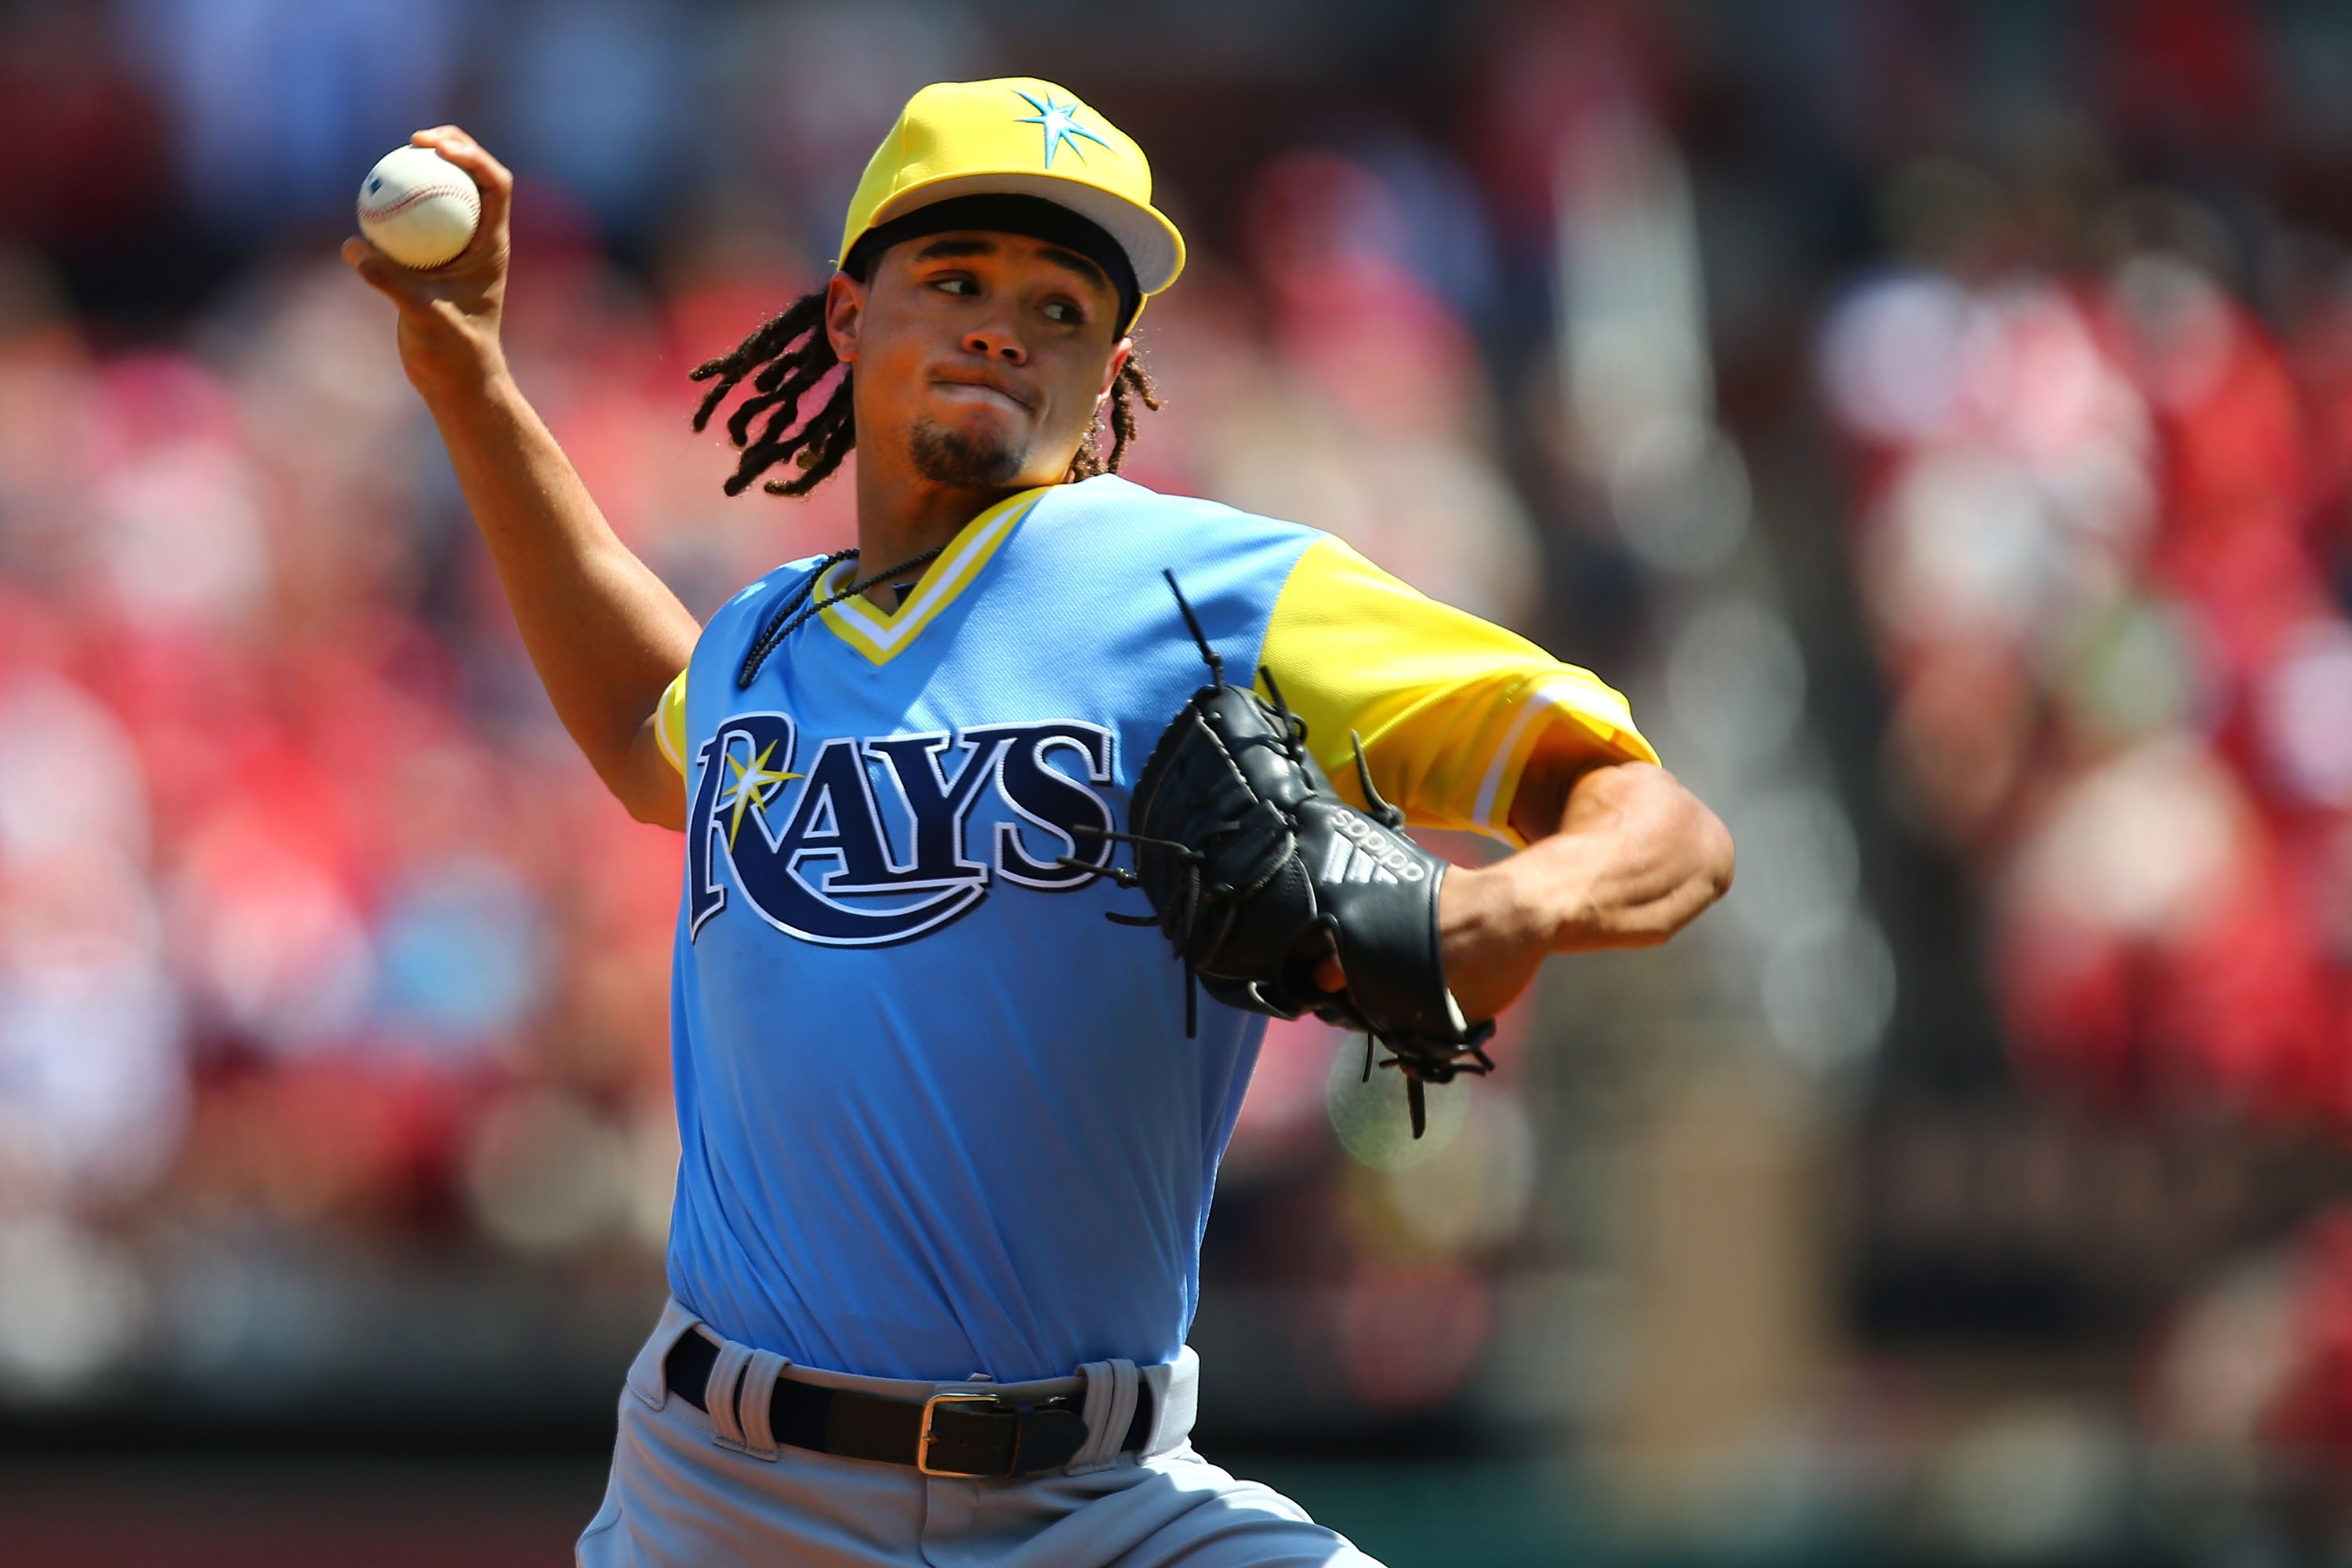 MLB trade rumors: Which MLB stars are likely to be traded?